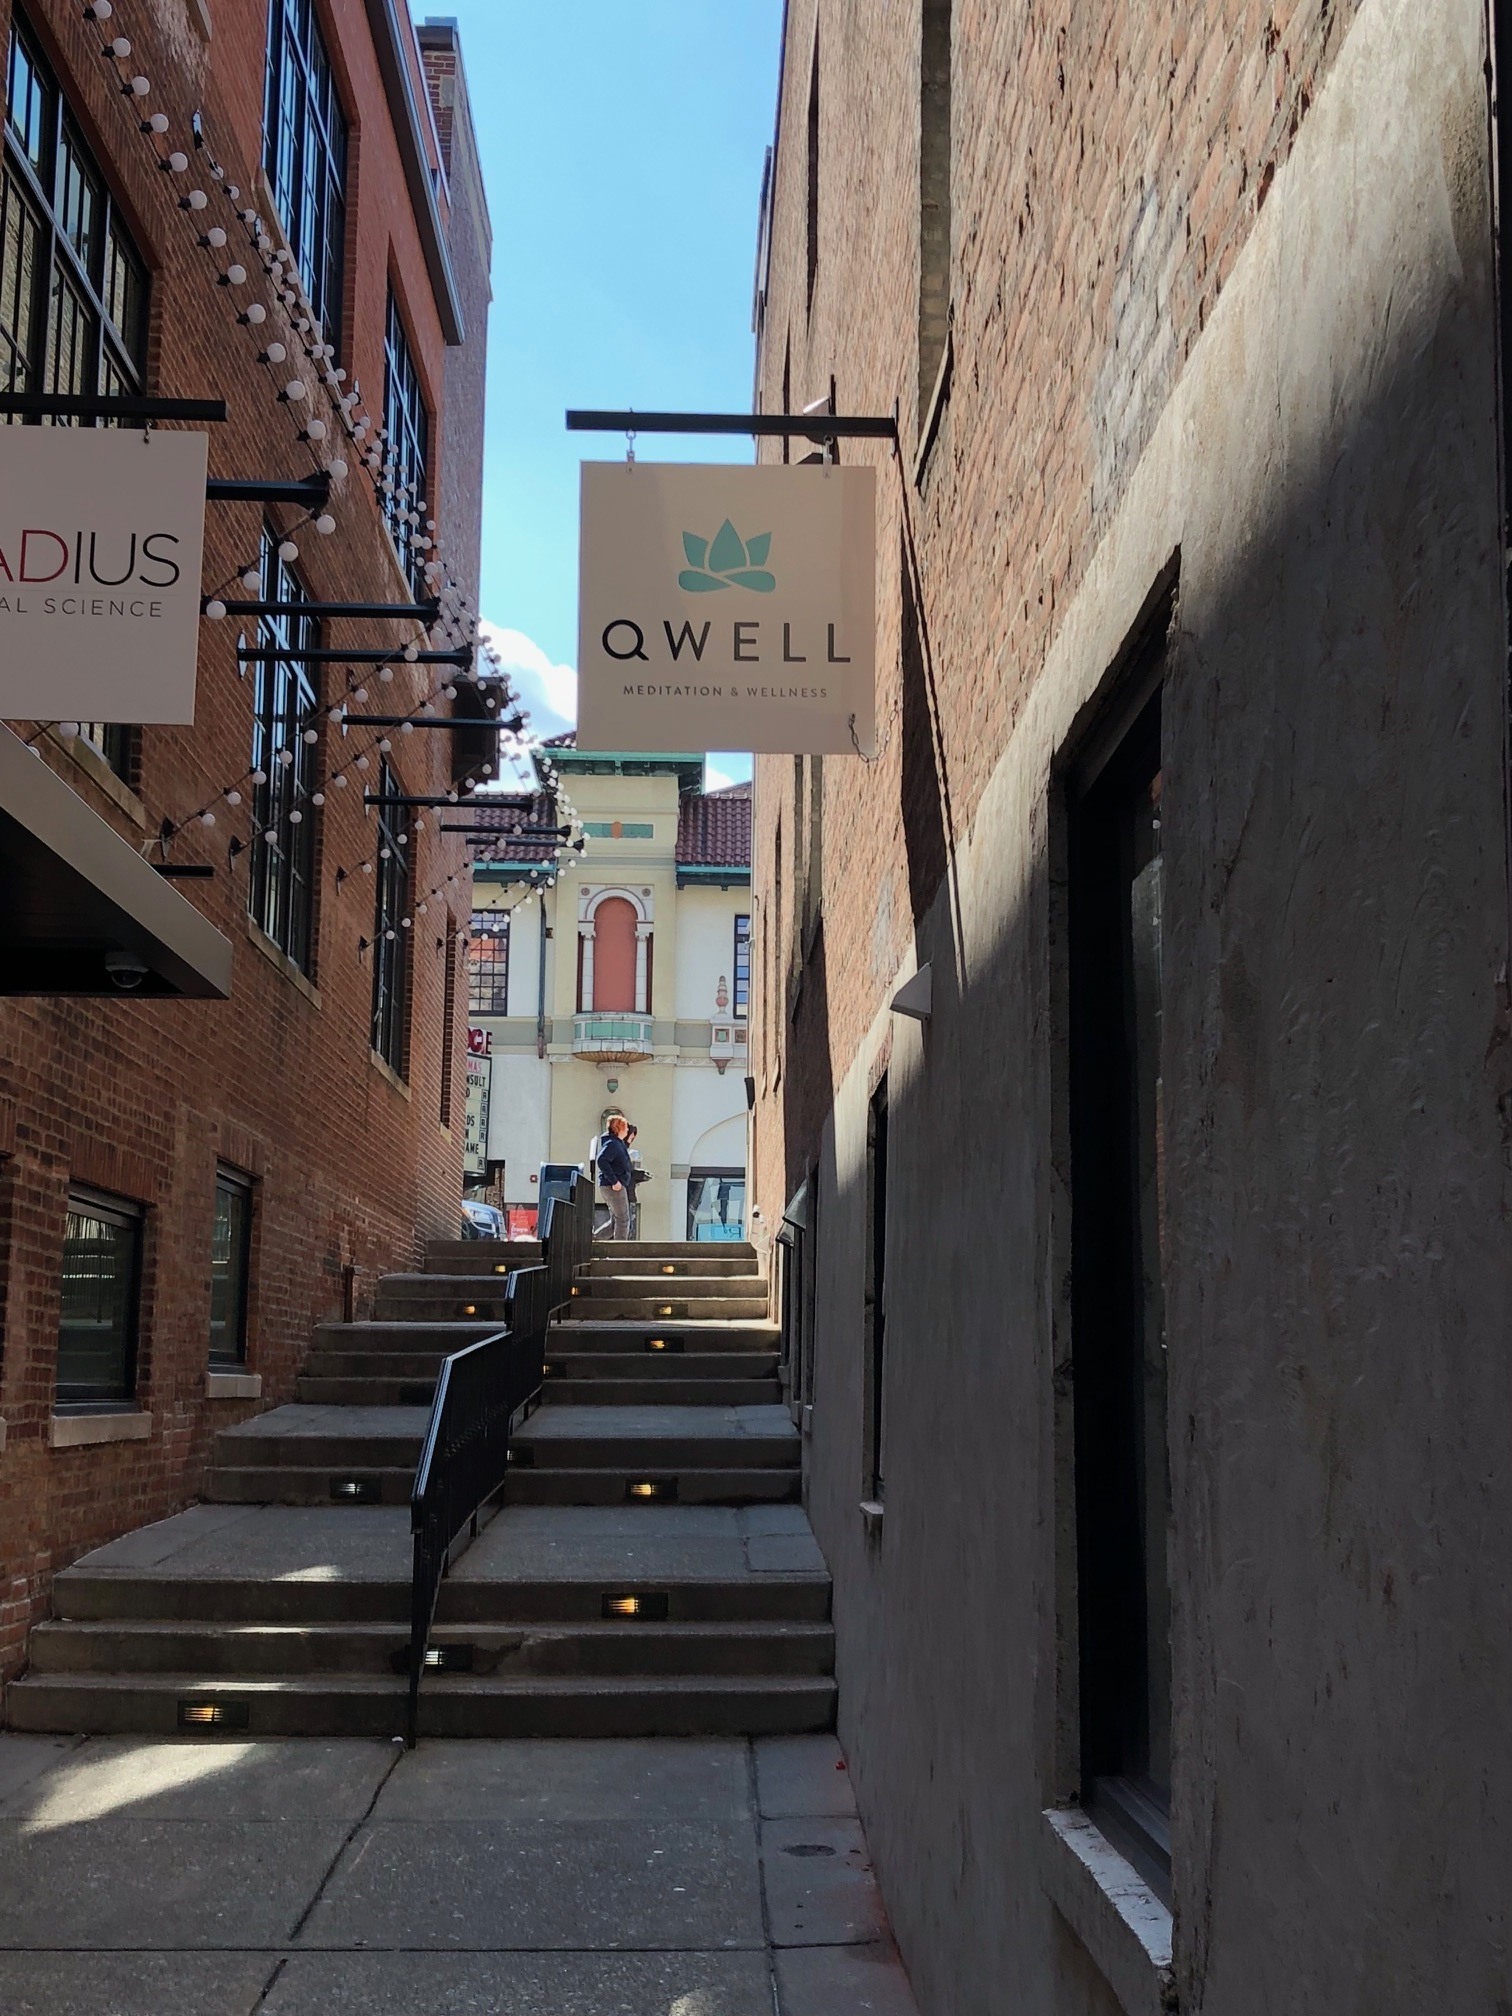 Qwell alley sign .jpg